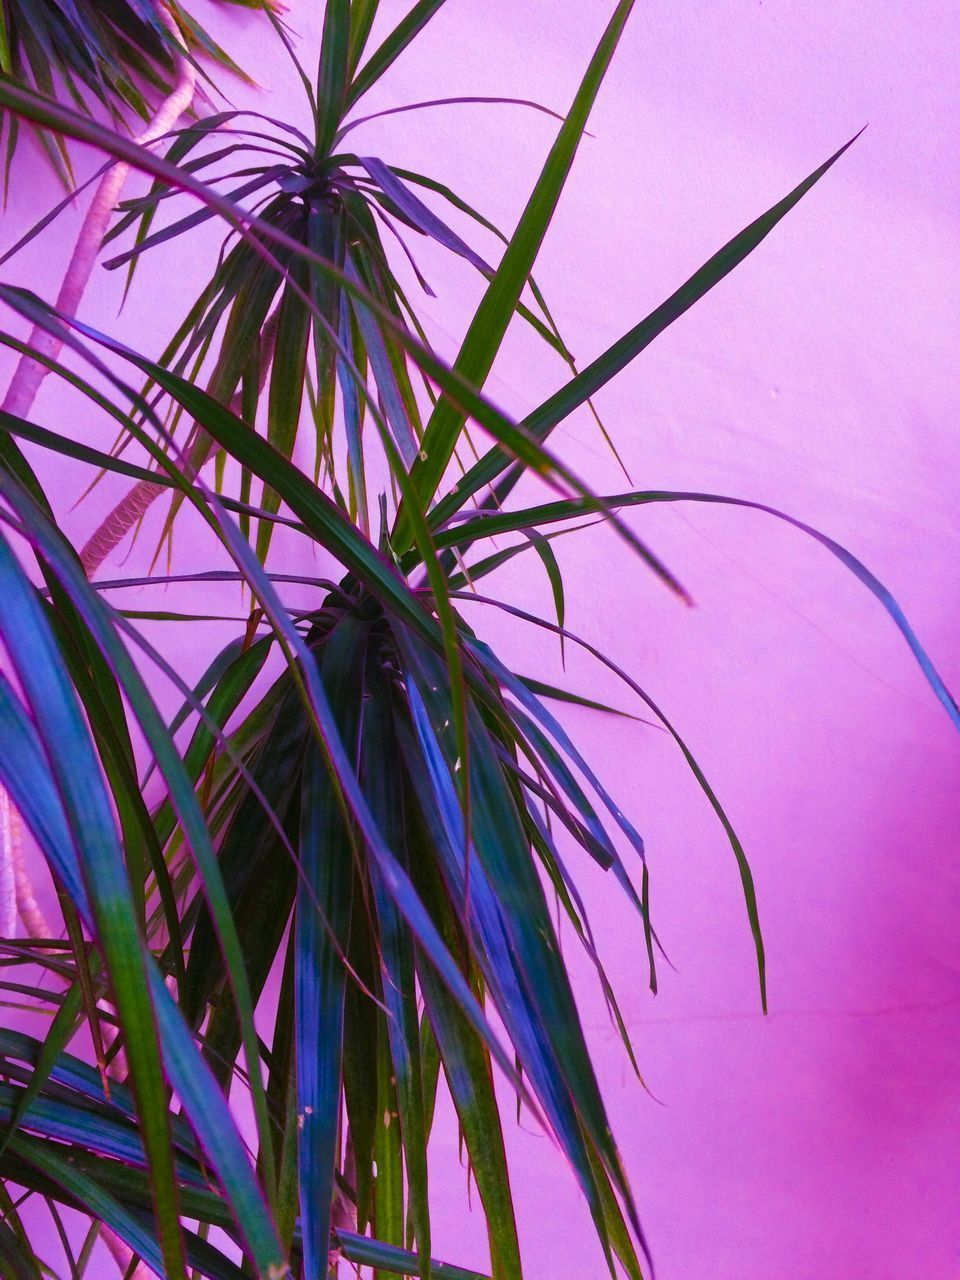 plant, growth, close-up, beauty in nature, no people, pink color, leaf, plant part, nature, purple, indoors, day, freshness, green color, flower, vulnerability, flowering plant, selective focus, fragility, palm leaf